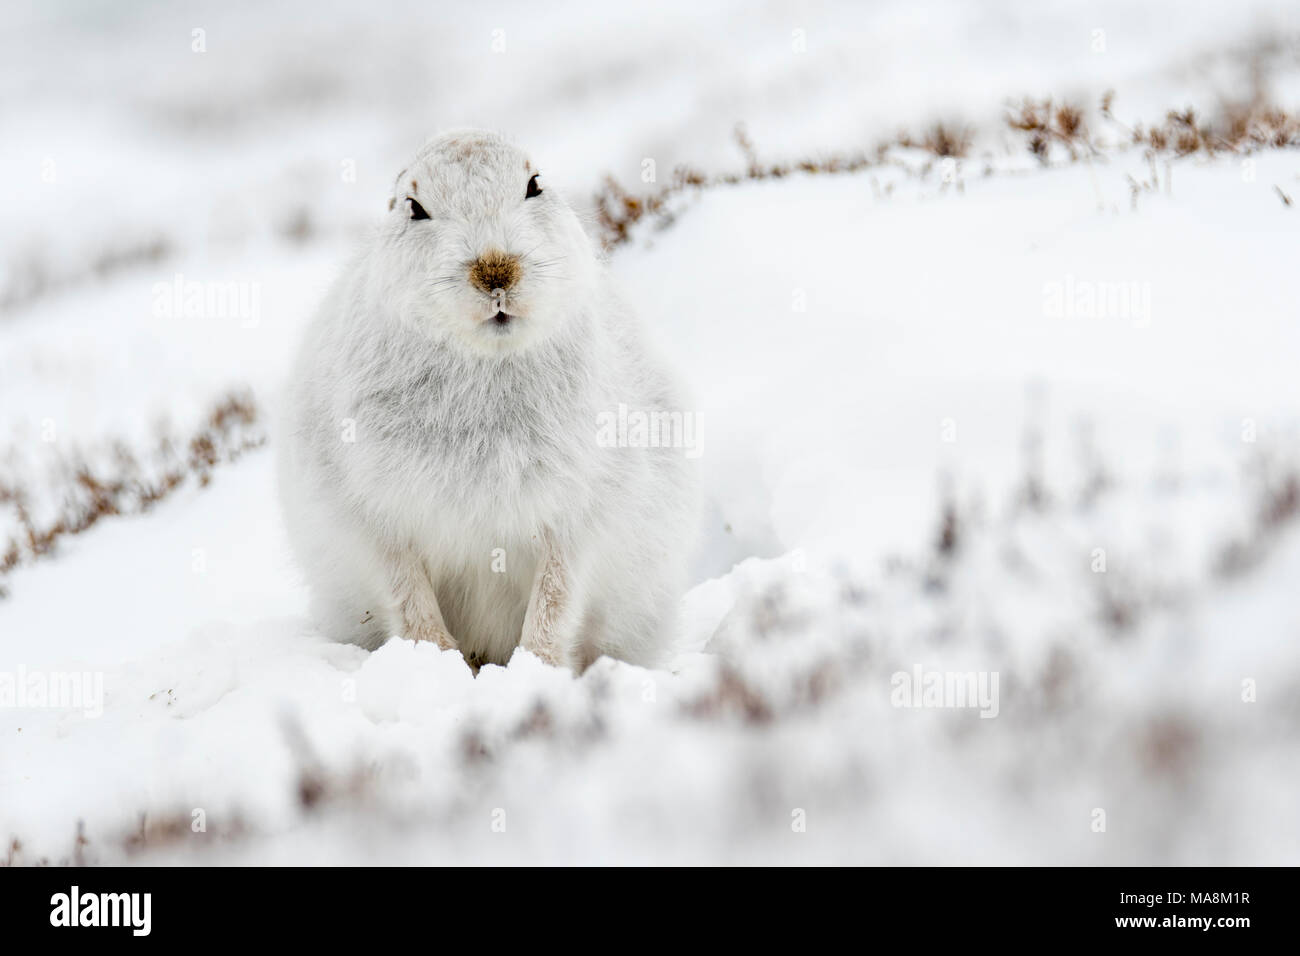 Alert mountain hare (lepus timidus) on snow covered hillside in the Scottish Highlands, March 2018 - Stock Image